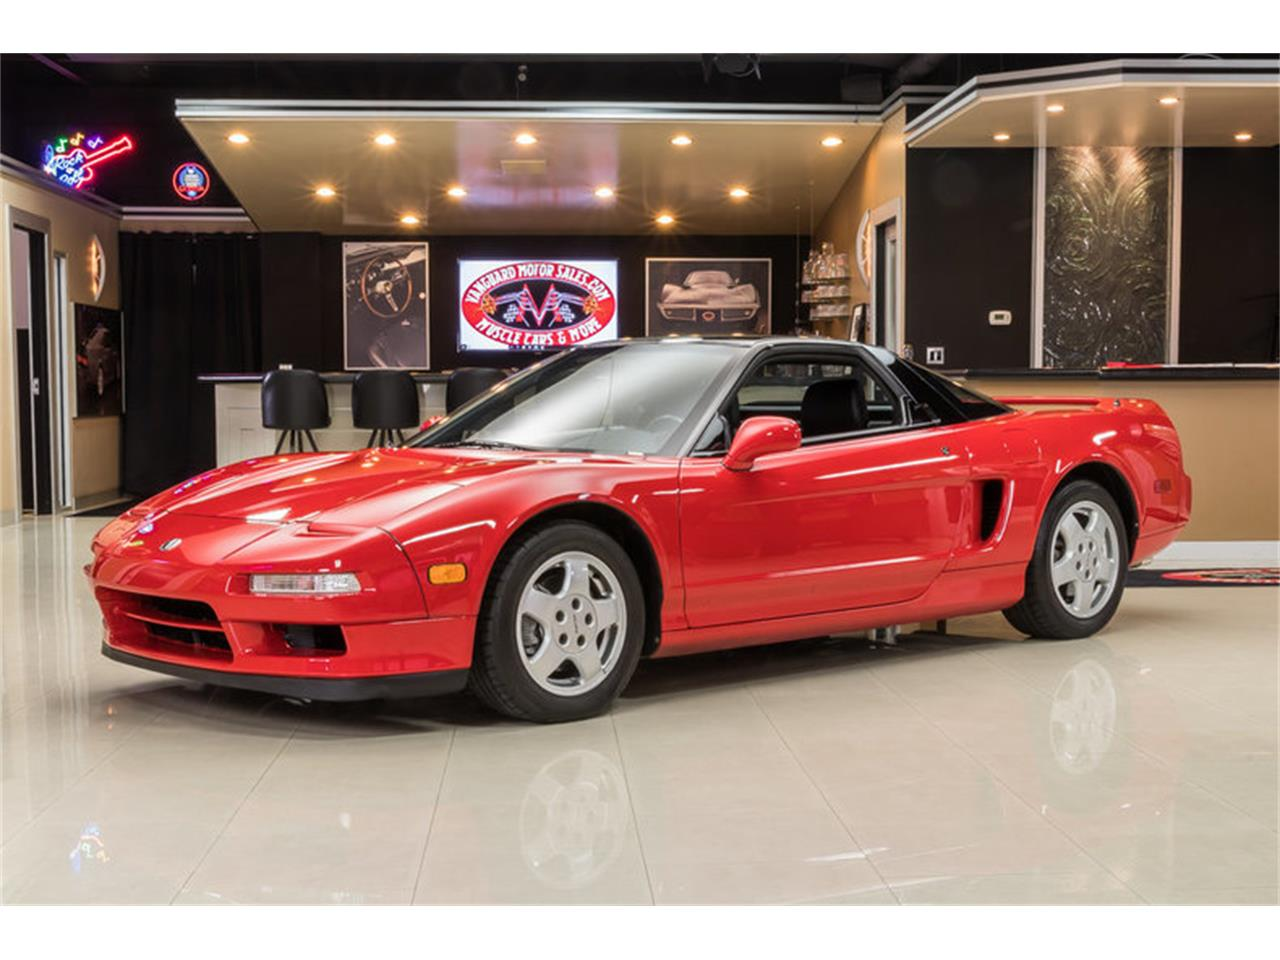 Large Picture of '92 Acura NSX located in Plymouth Michigan - $69,900.00 Offered by Vanguard Motor Sales - MZ8C